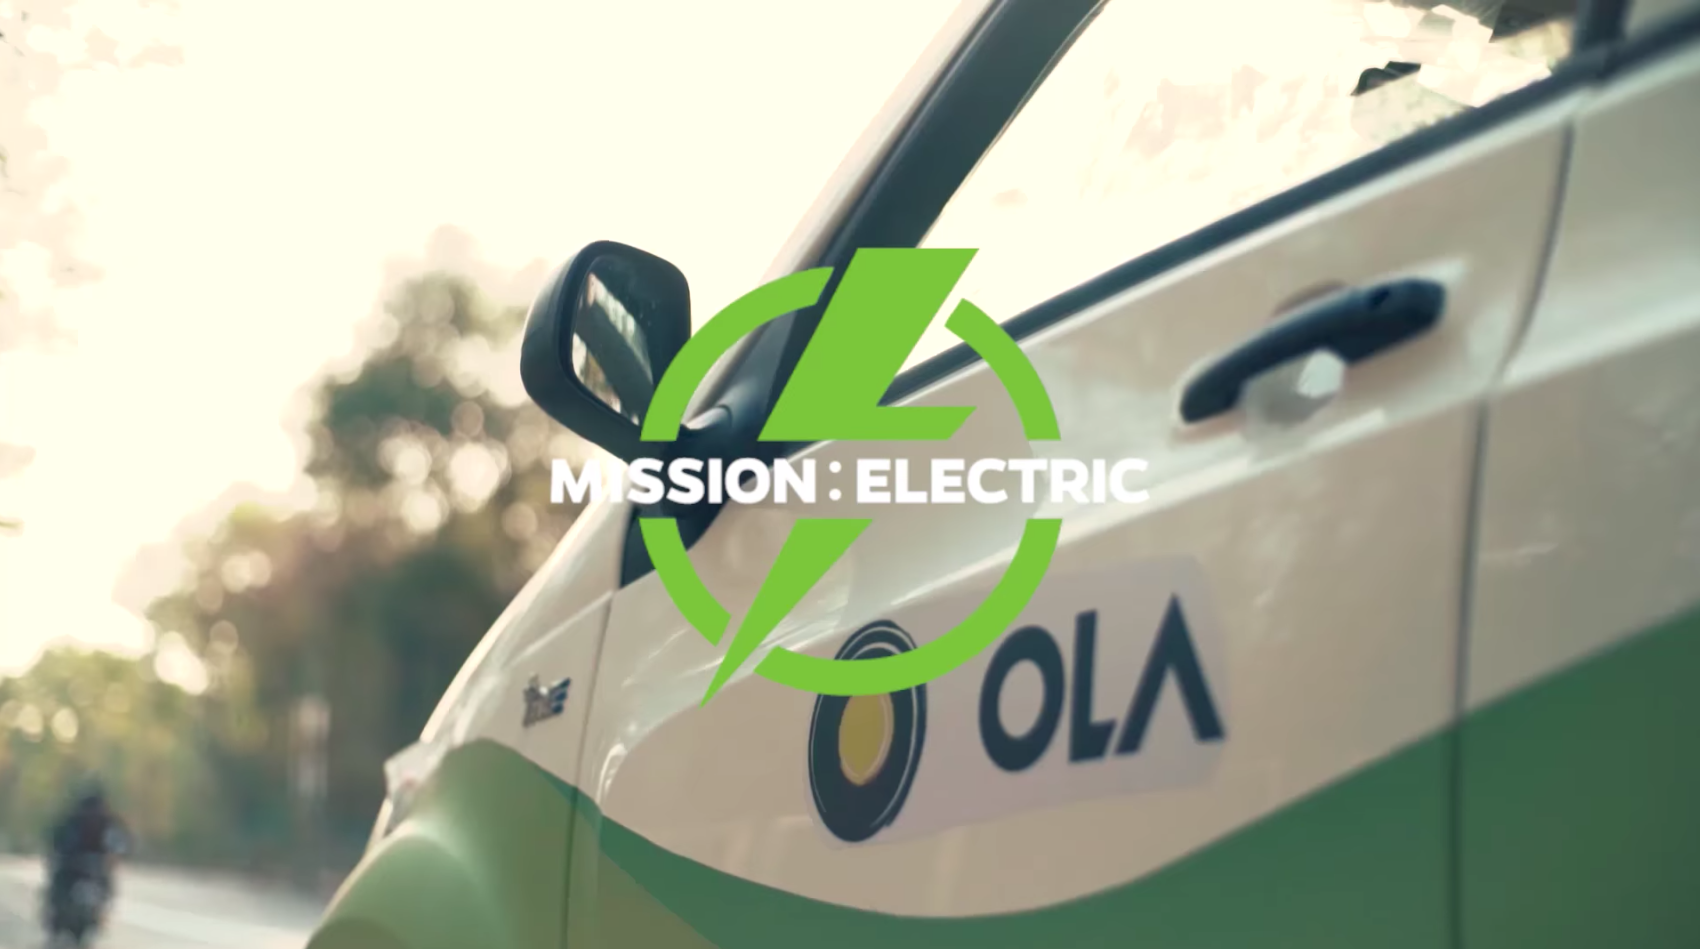 The Ev Electric Vehicle Program In Nagpur Has Provided Ola With Significant Insights Into Effectively Managing Vehicles Batteries And Operations A